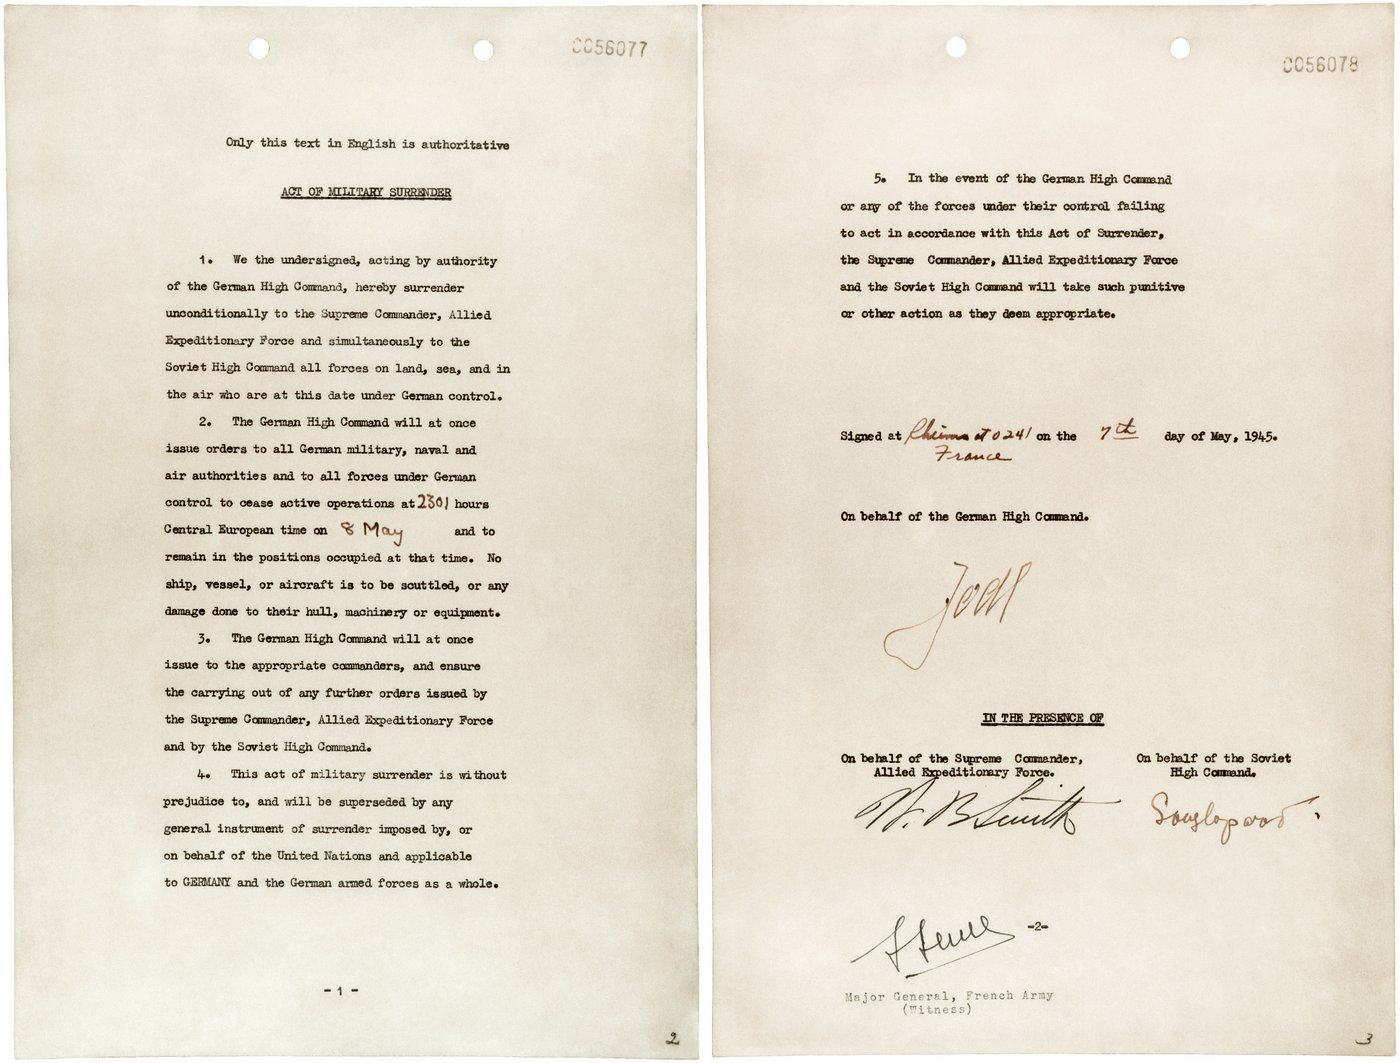 Photo of the German instrument of surrender